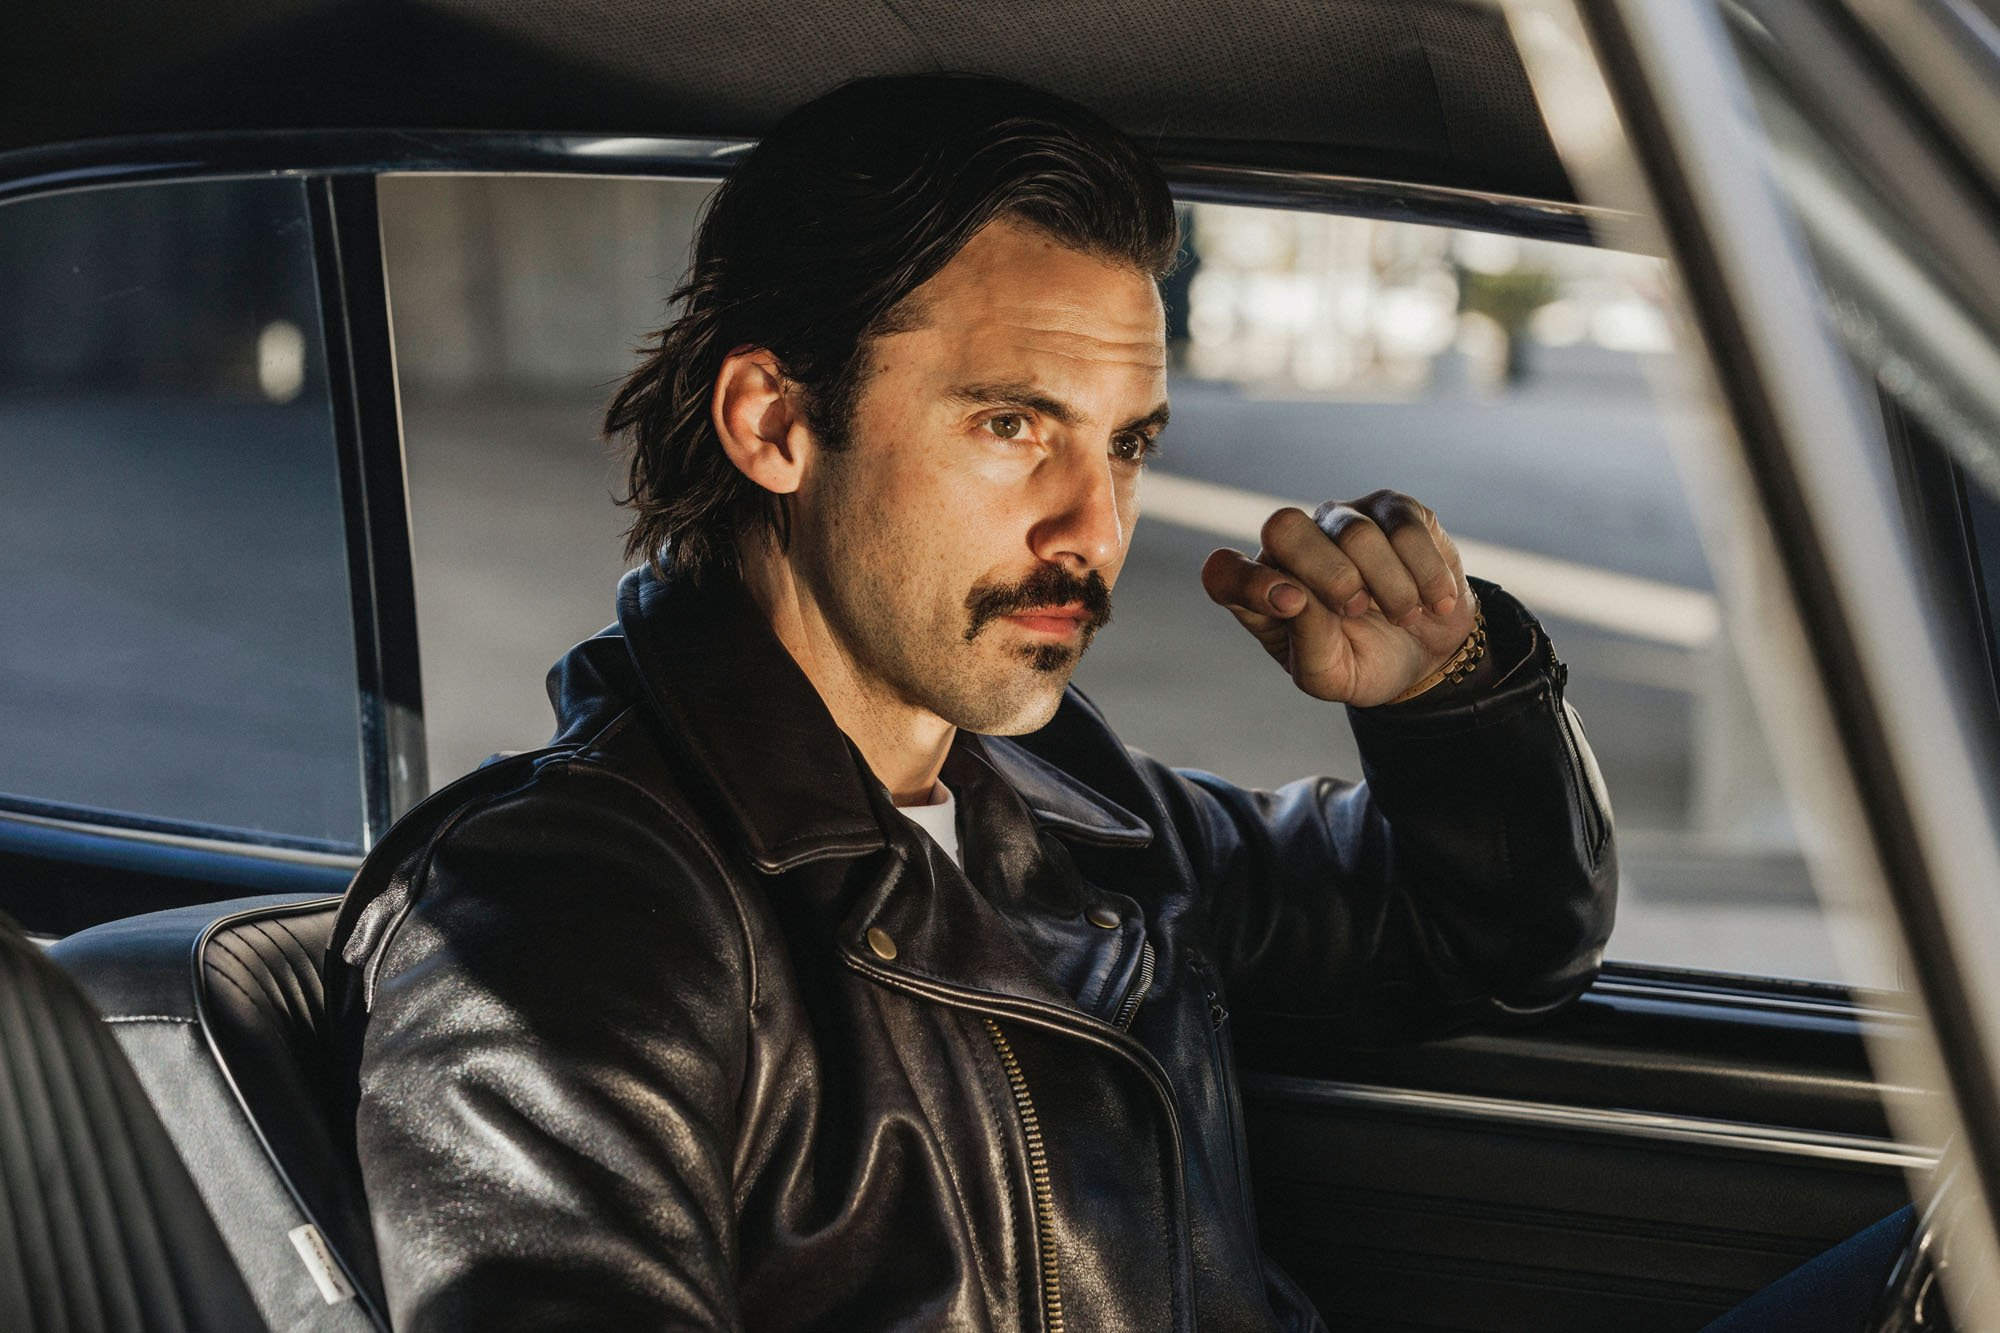 Milo Ventimiglia in Horween Leather Co. X Schott for 3sixteen, Photograph by Julian Berman for 3sixteen